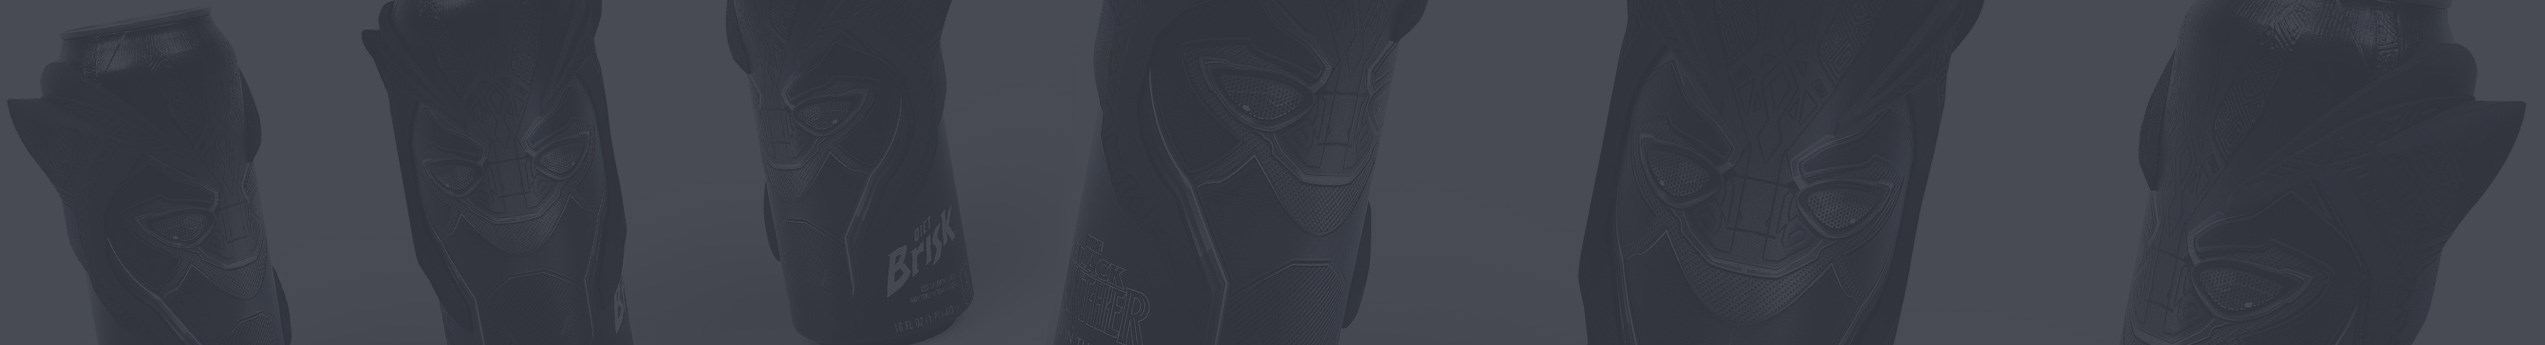 protolabs 3d printing black panther for pepsico background